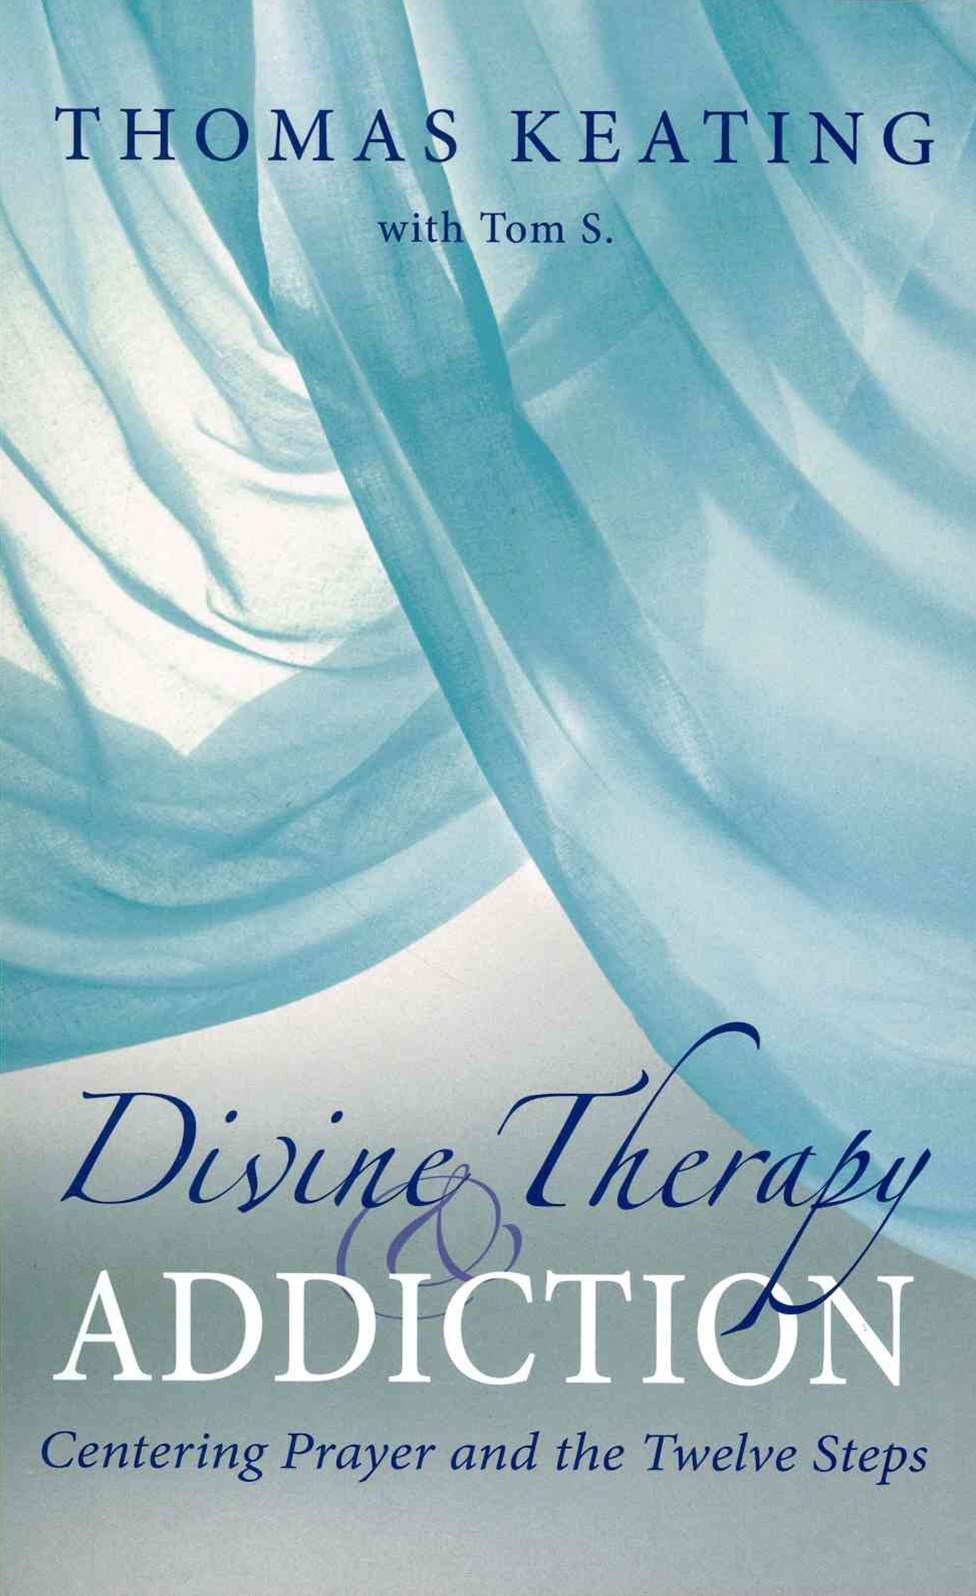 Divine Intimacy and Addiction